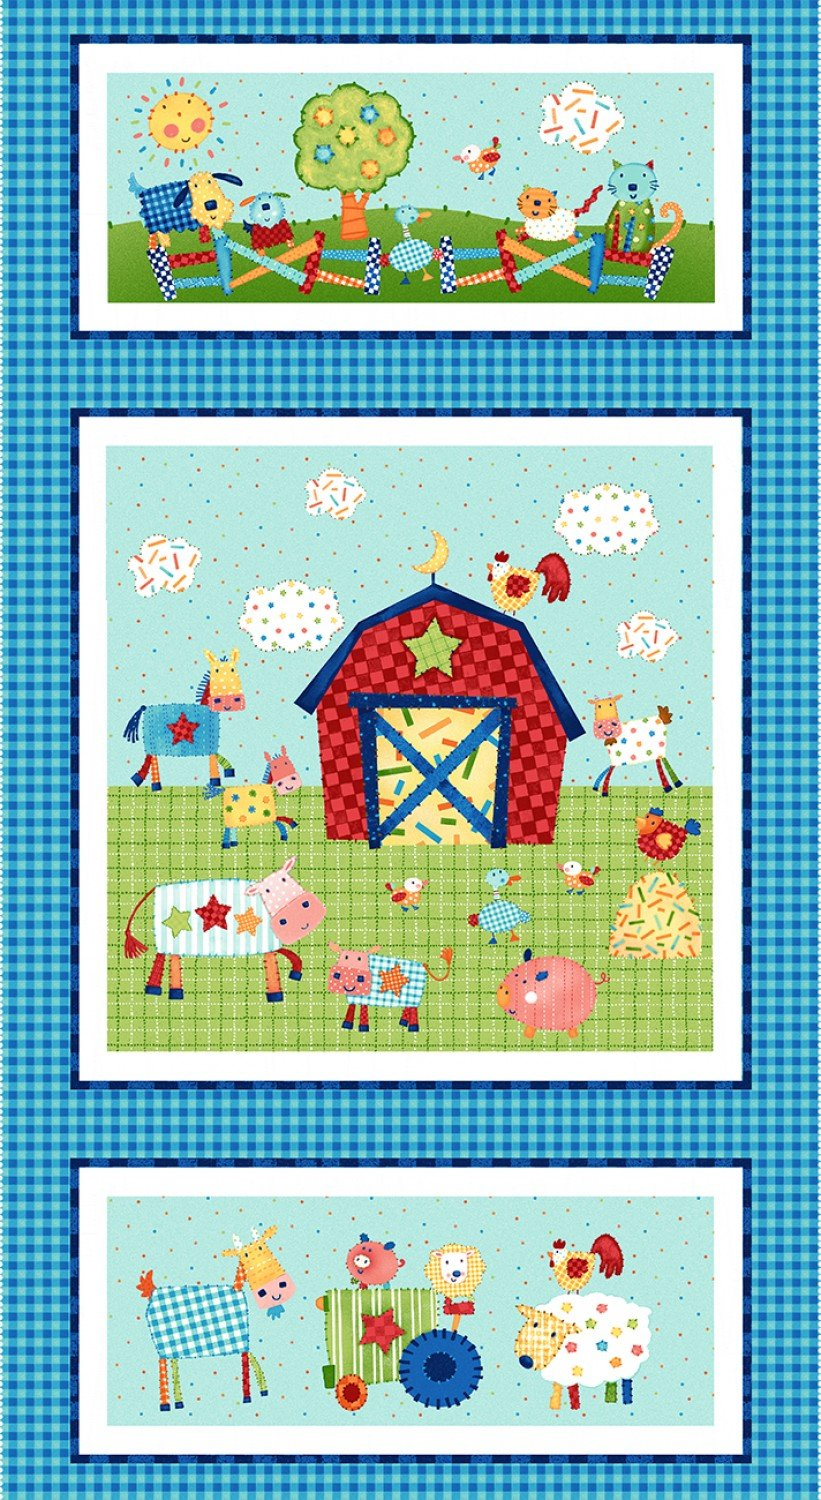 Little Red Barn Children's Farm Fabric Panels 24 x 44 Inches